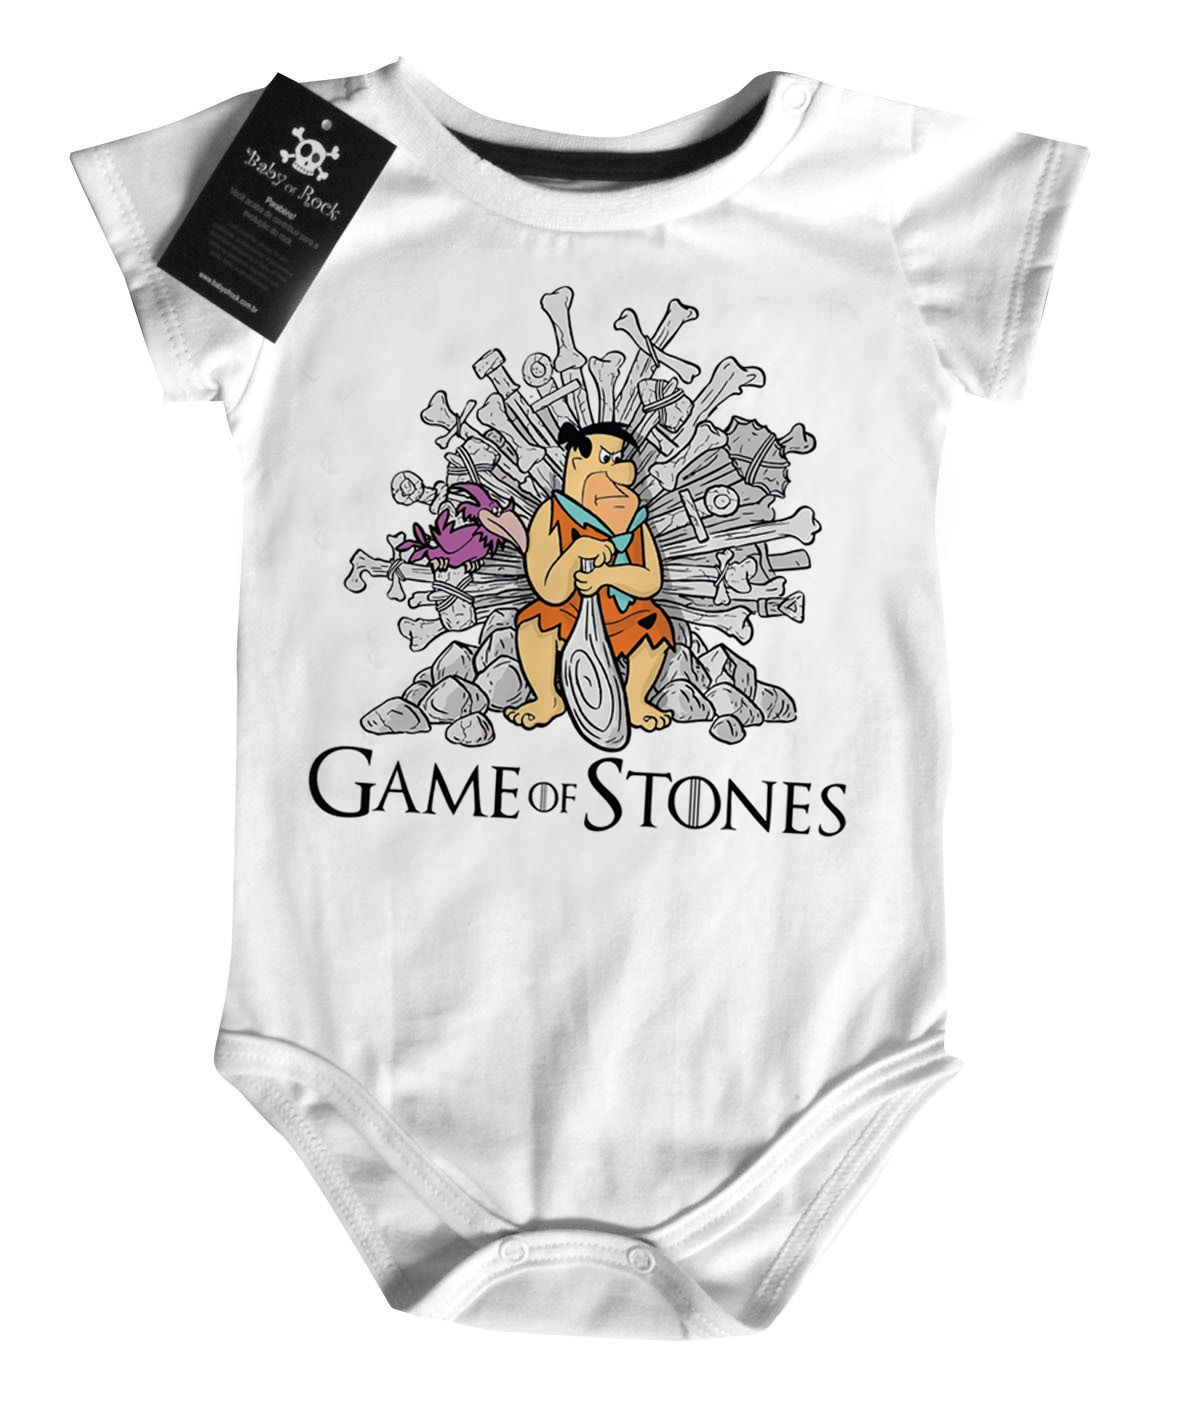 Body Filmes - Game of Thrones Flintstones   - White   - Baby Monster S/A